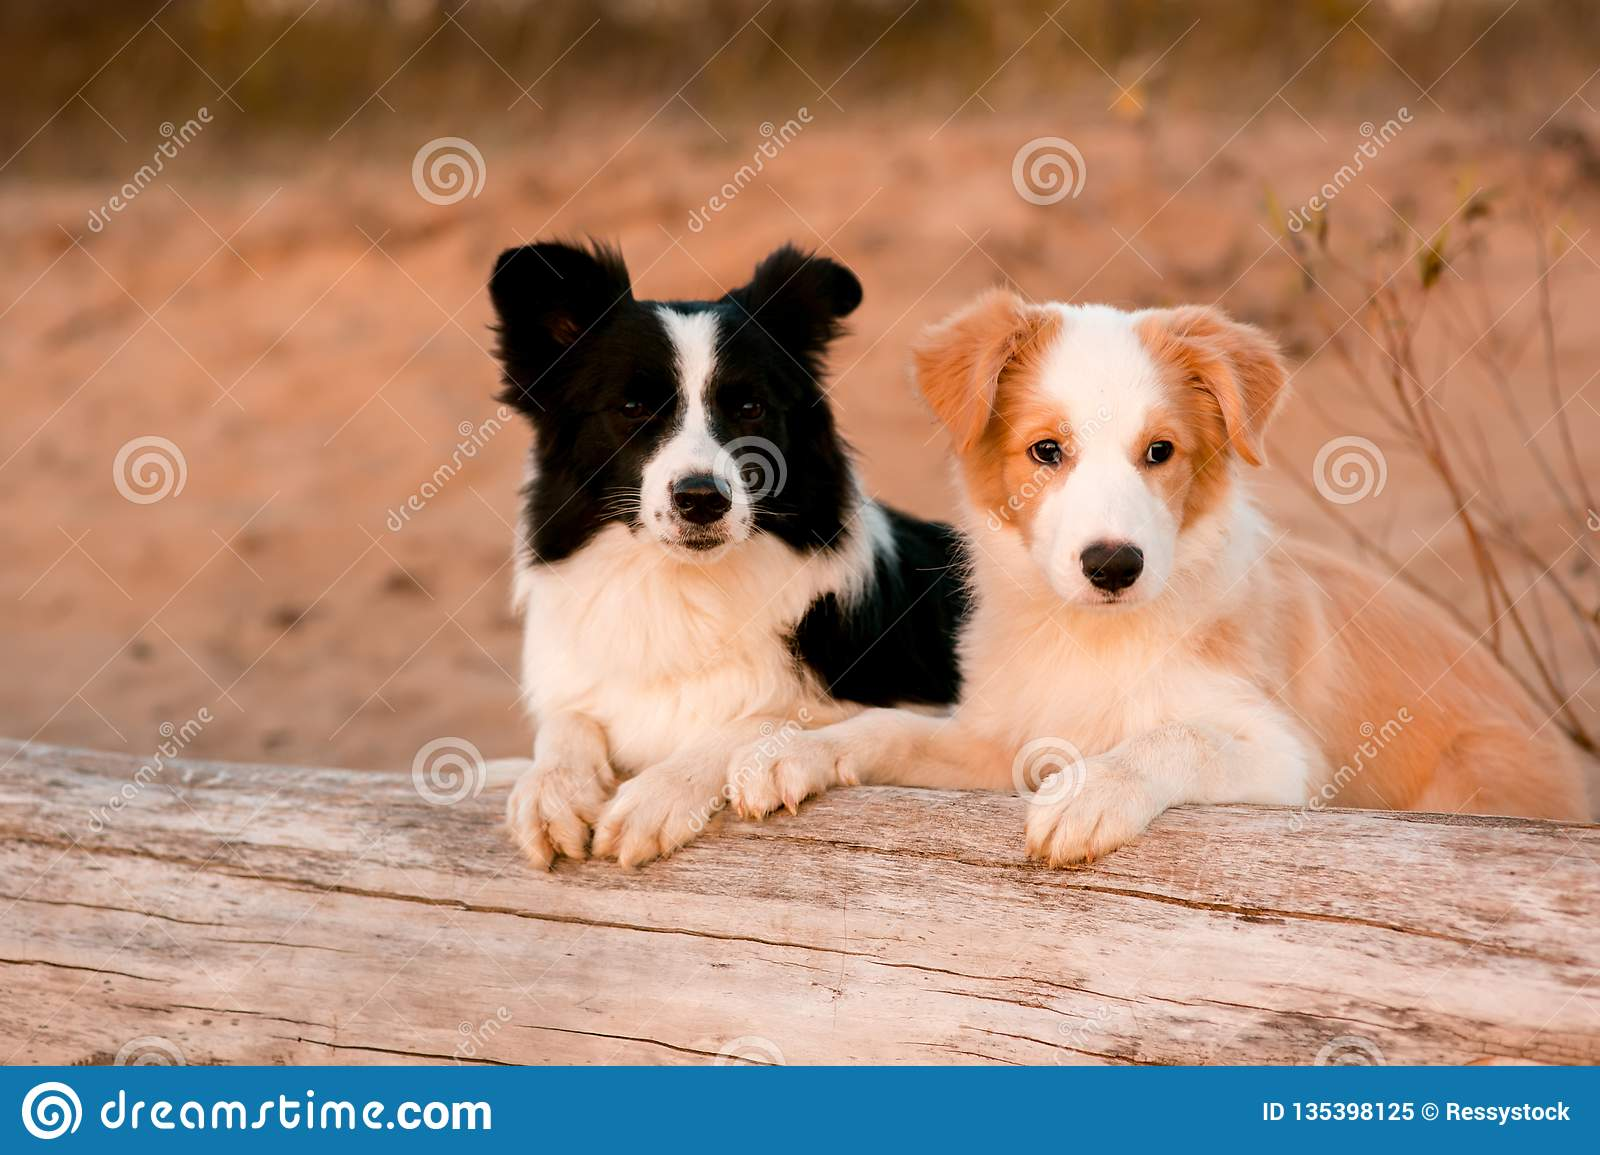 Red Puppy Border Collie And Black And White Dog At The Beach On Tree Sunset Stock Image Image Of Holiday Motion 135398125